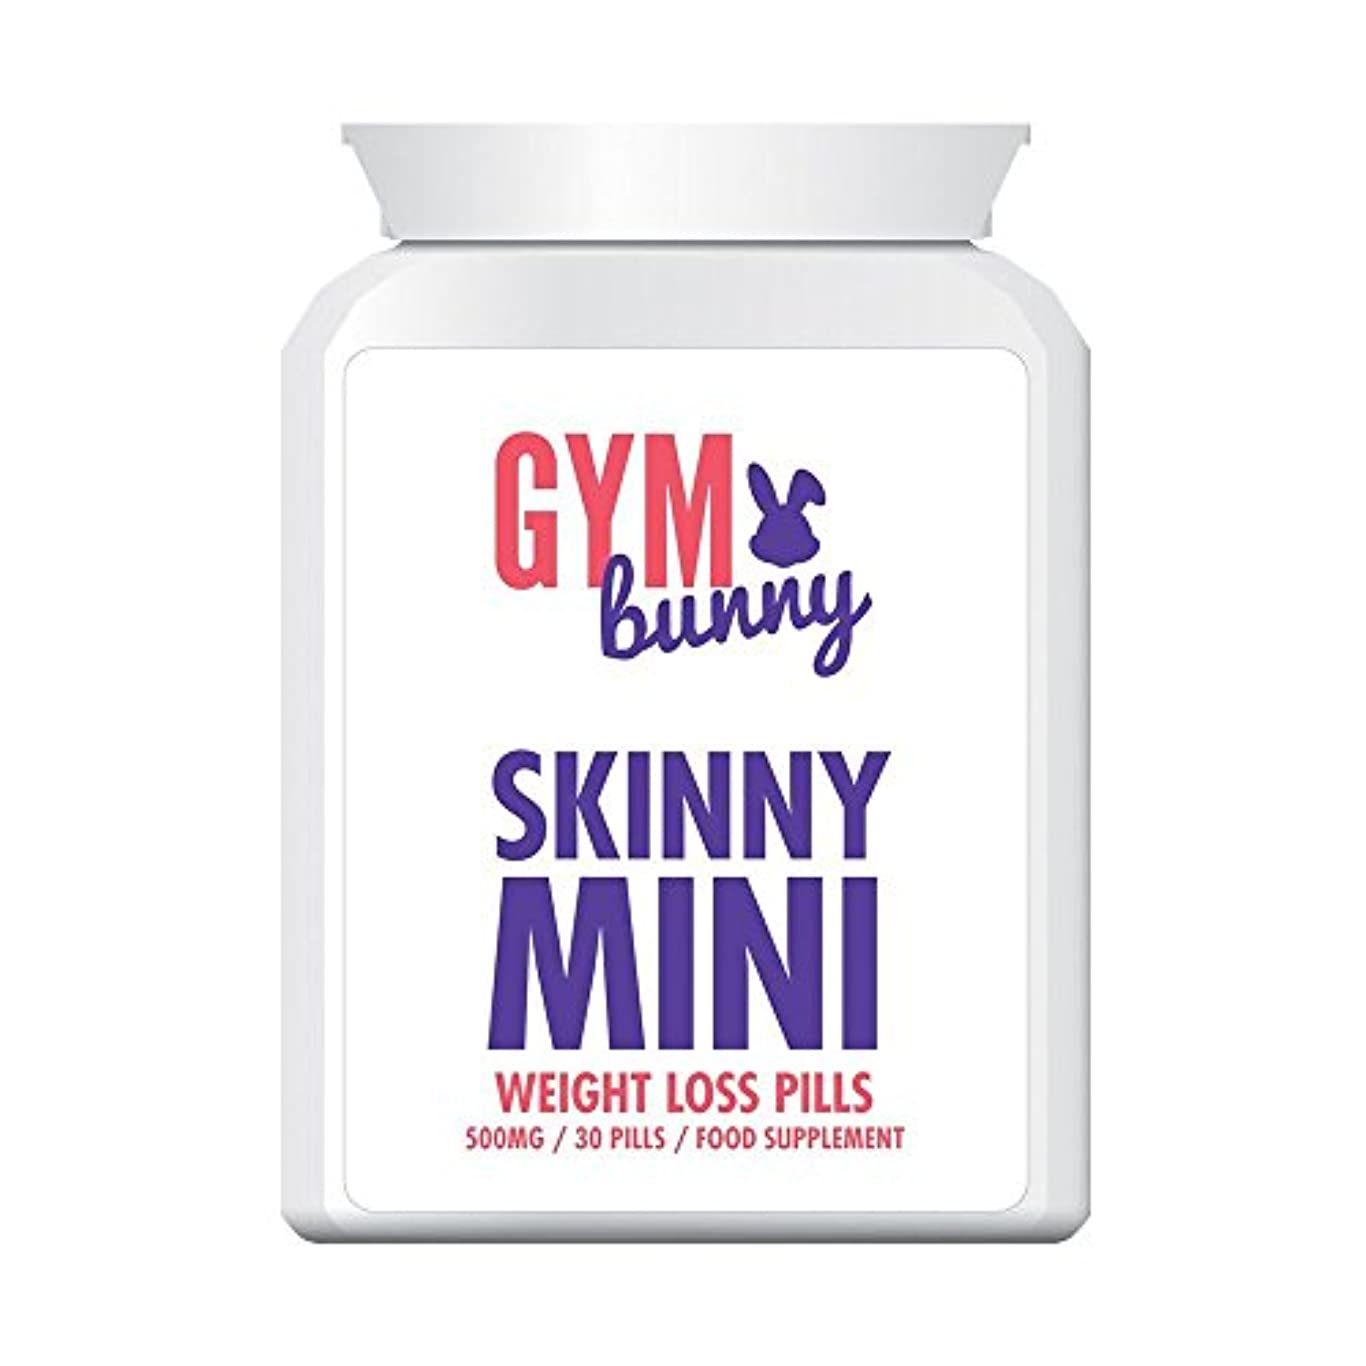 泥沼不快腸GYM BUNNY SKINNY MINI WEIGHT LOSS PILLS減量の丸薬 - ダイエット錠剤は、体重、体脂肪がFAST LOSE Jimu BUNNY SKINNY mini genryō no gan'yaku...